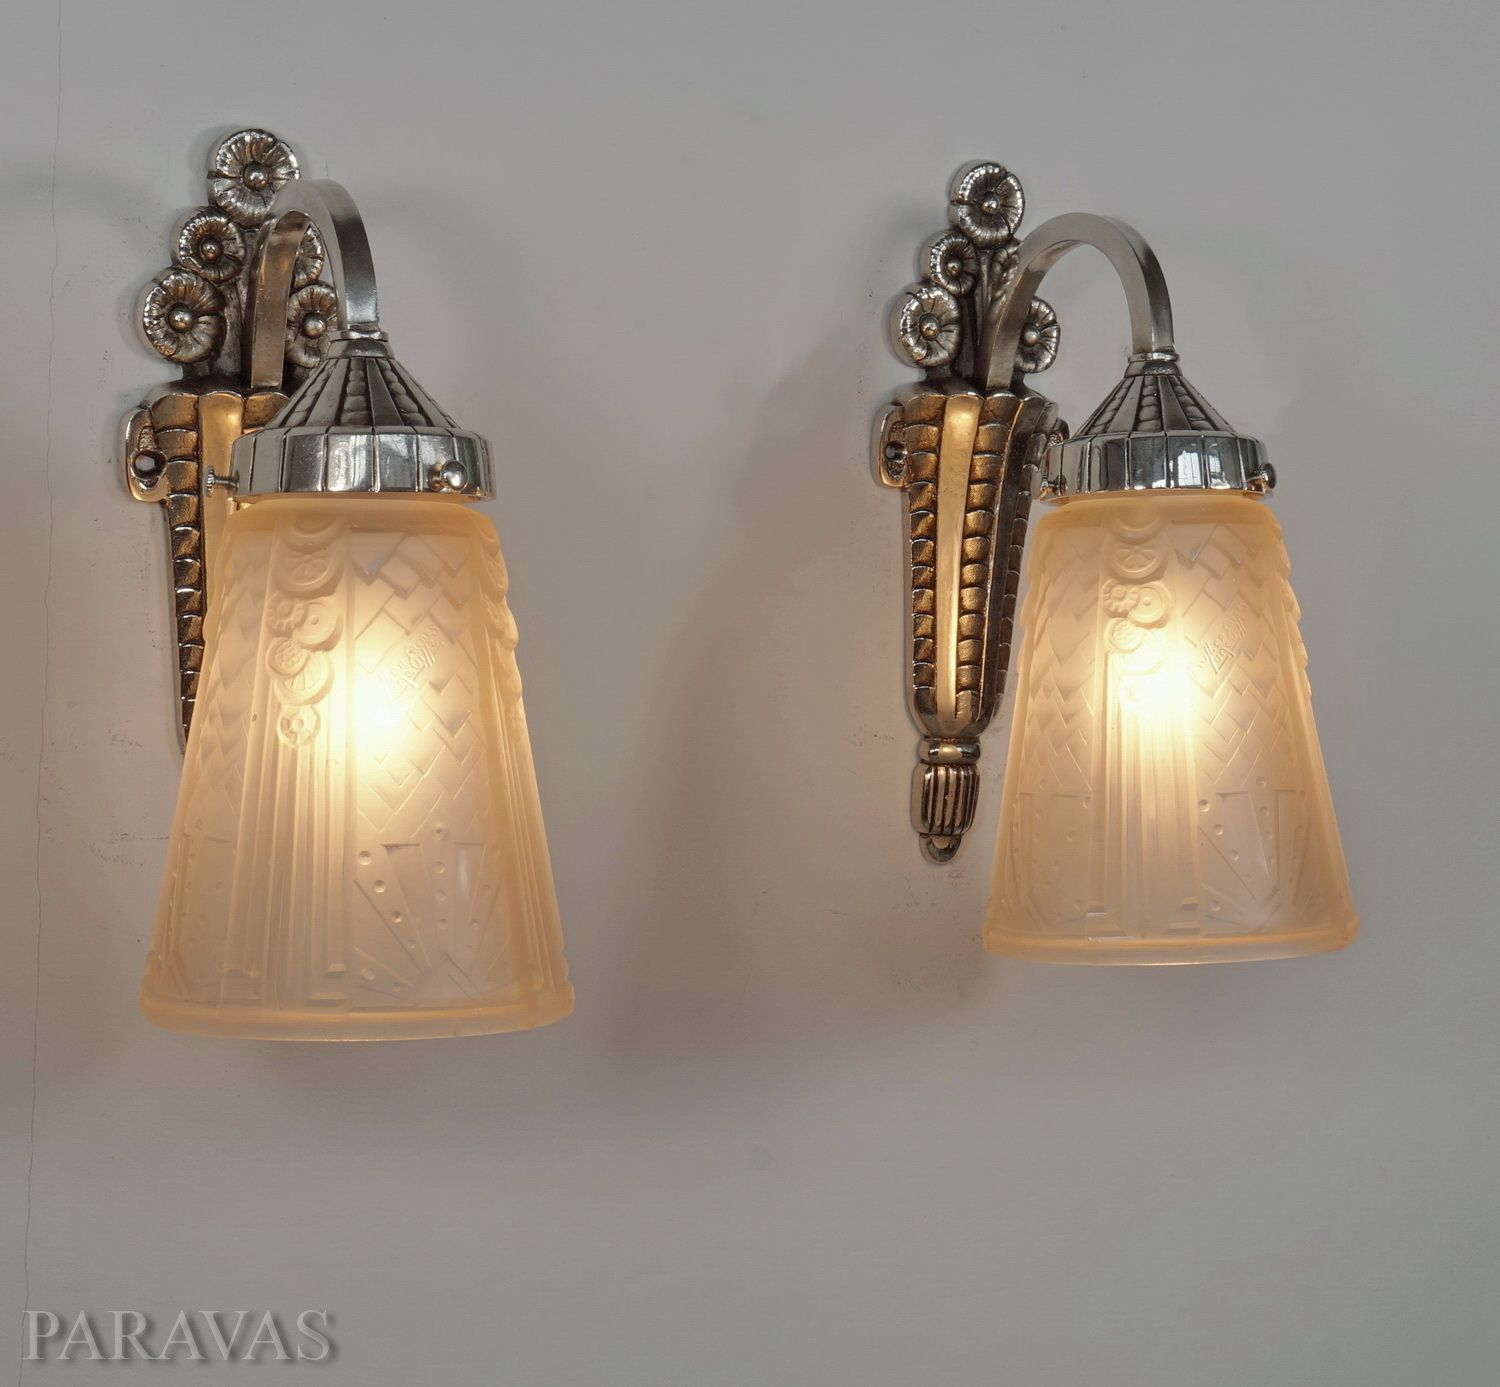 MULLER FRERES pair of French 1930 art deco wall sconces paravas